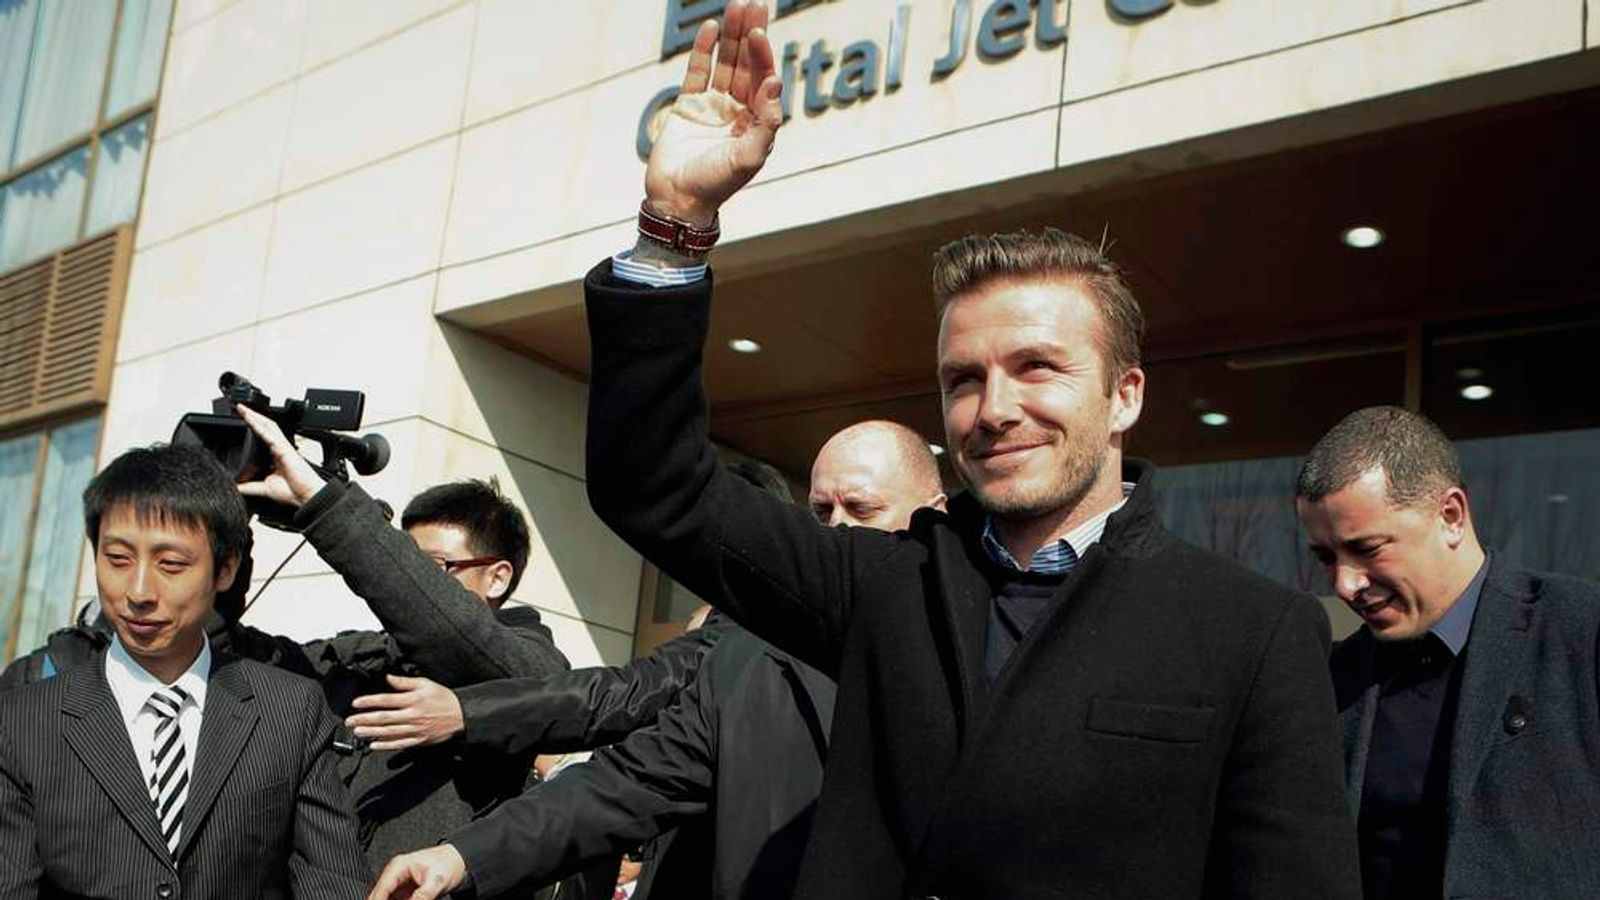 Former England captain Beckham waves after he arrives at an airport in Beijing